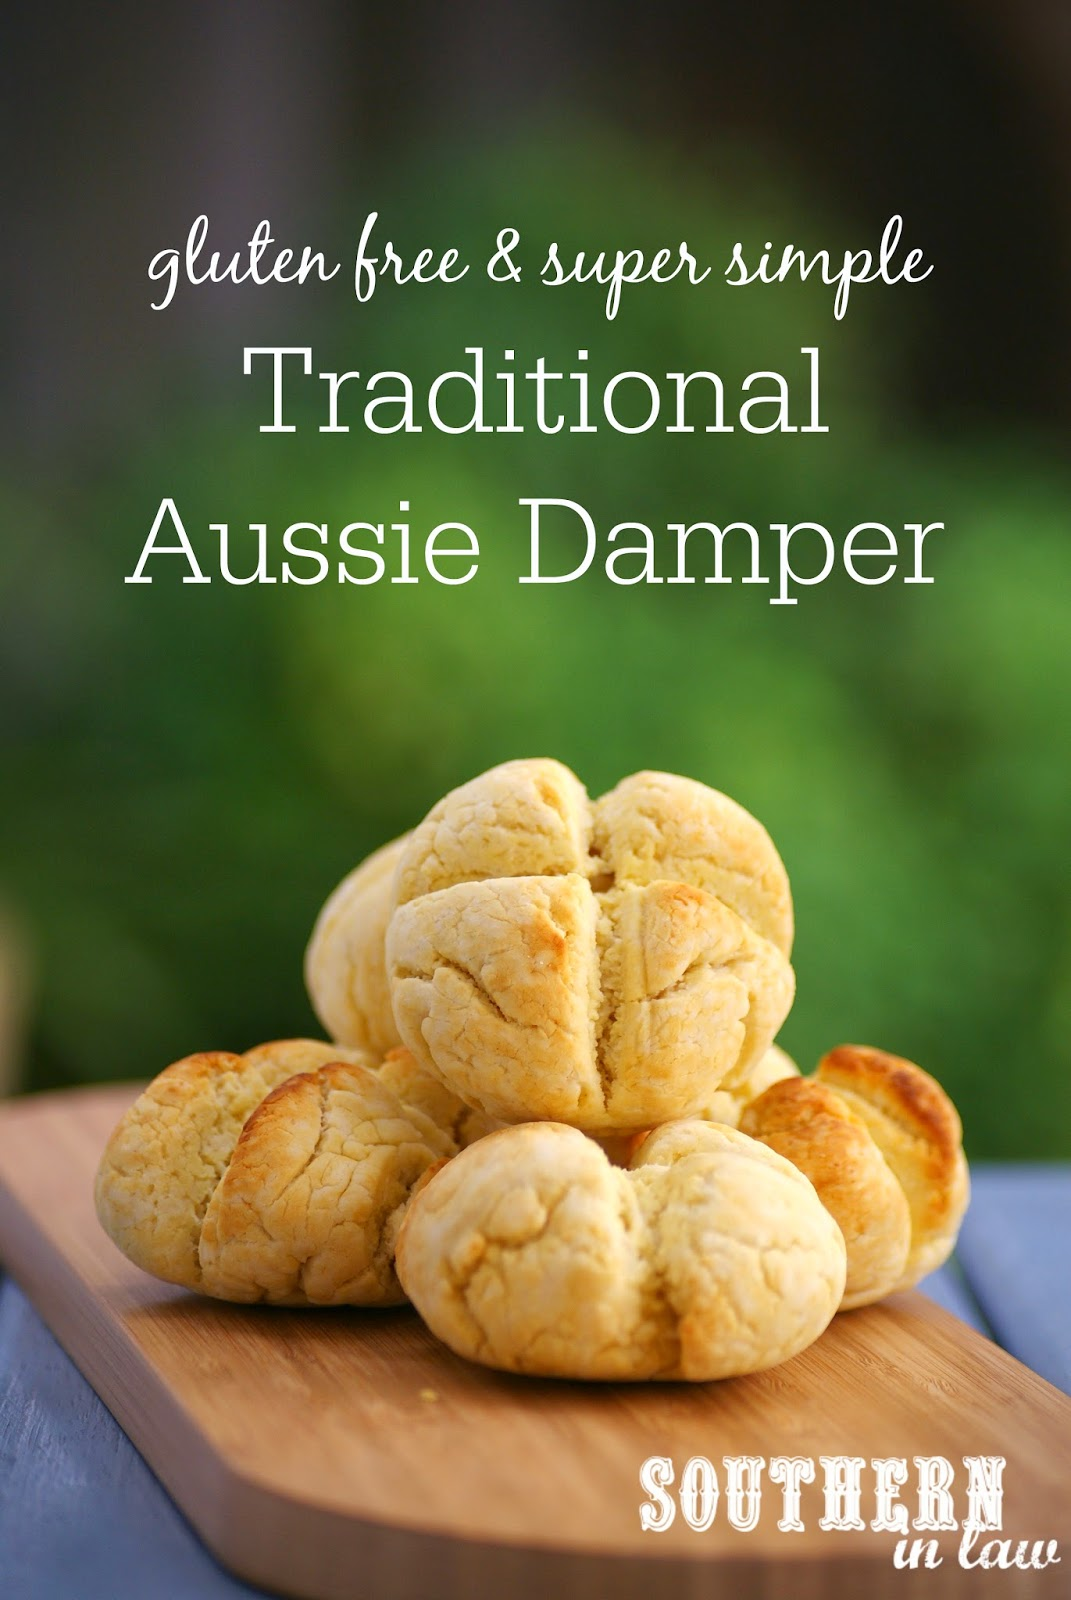 Gluten Free Damper Recipe - gluten free, egg free, clean eating friendly, Healthy Australian Recipes